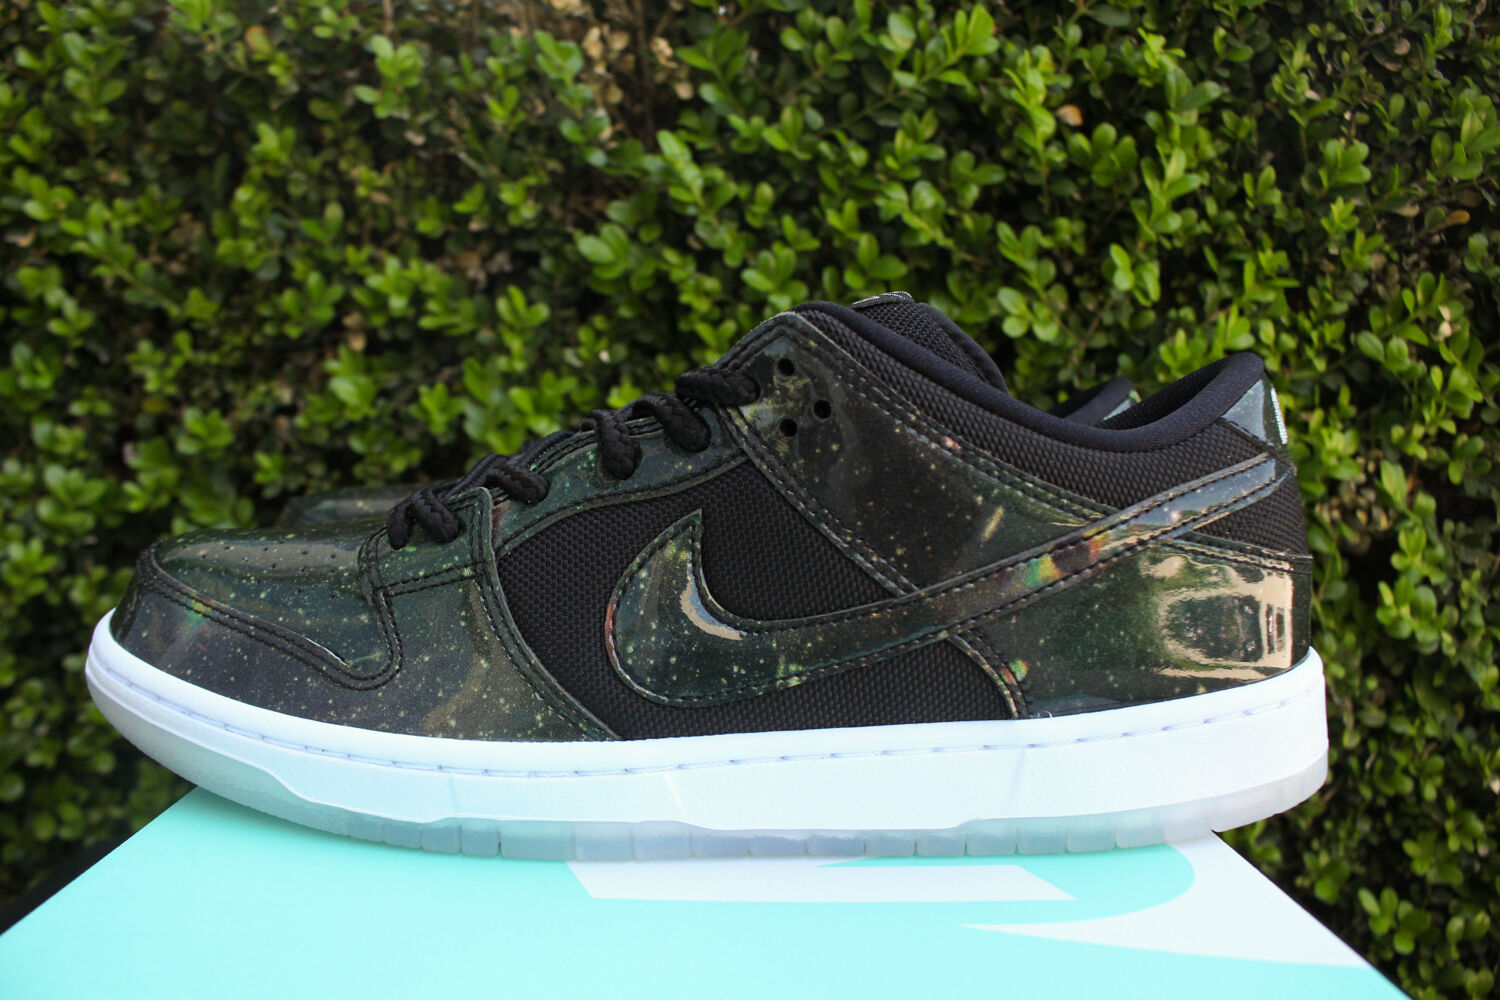 Wild casual shoes NIKE SB DUNK LOW TRD 420 QS Price reduction